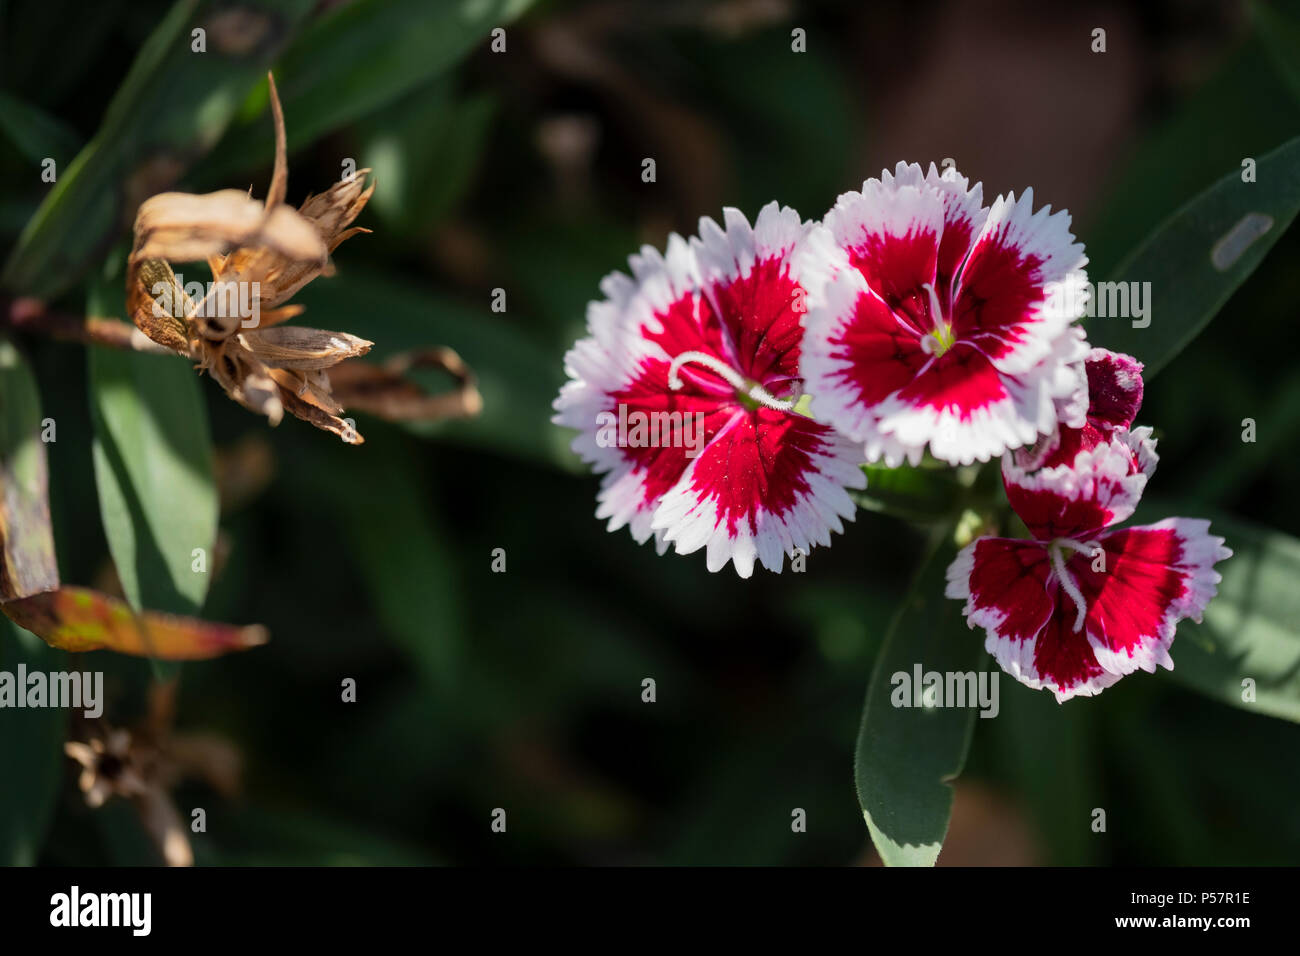 White And Red Flowers Of Dianthus Barbatus Stock Photos White And